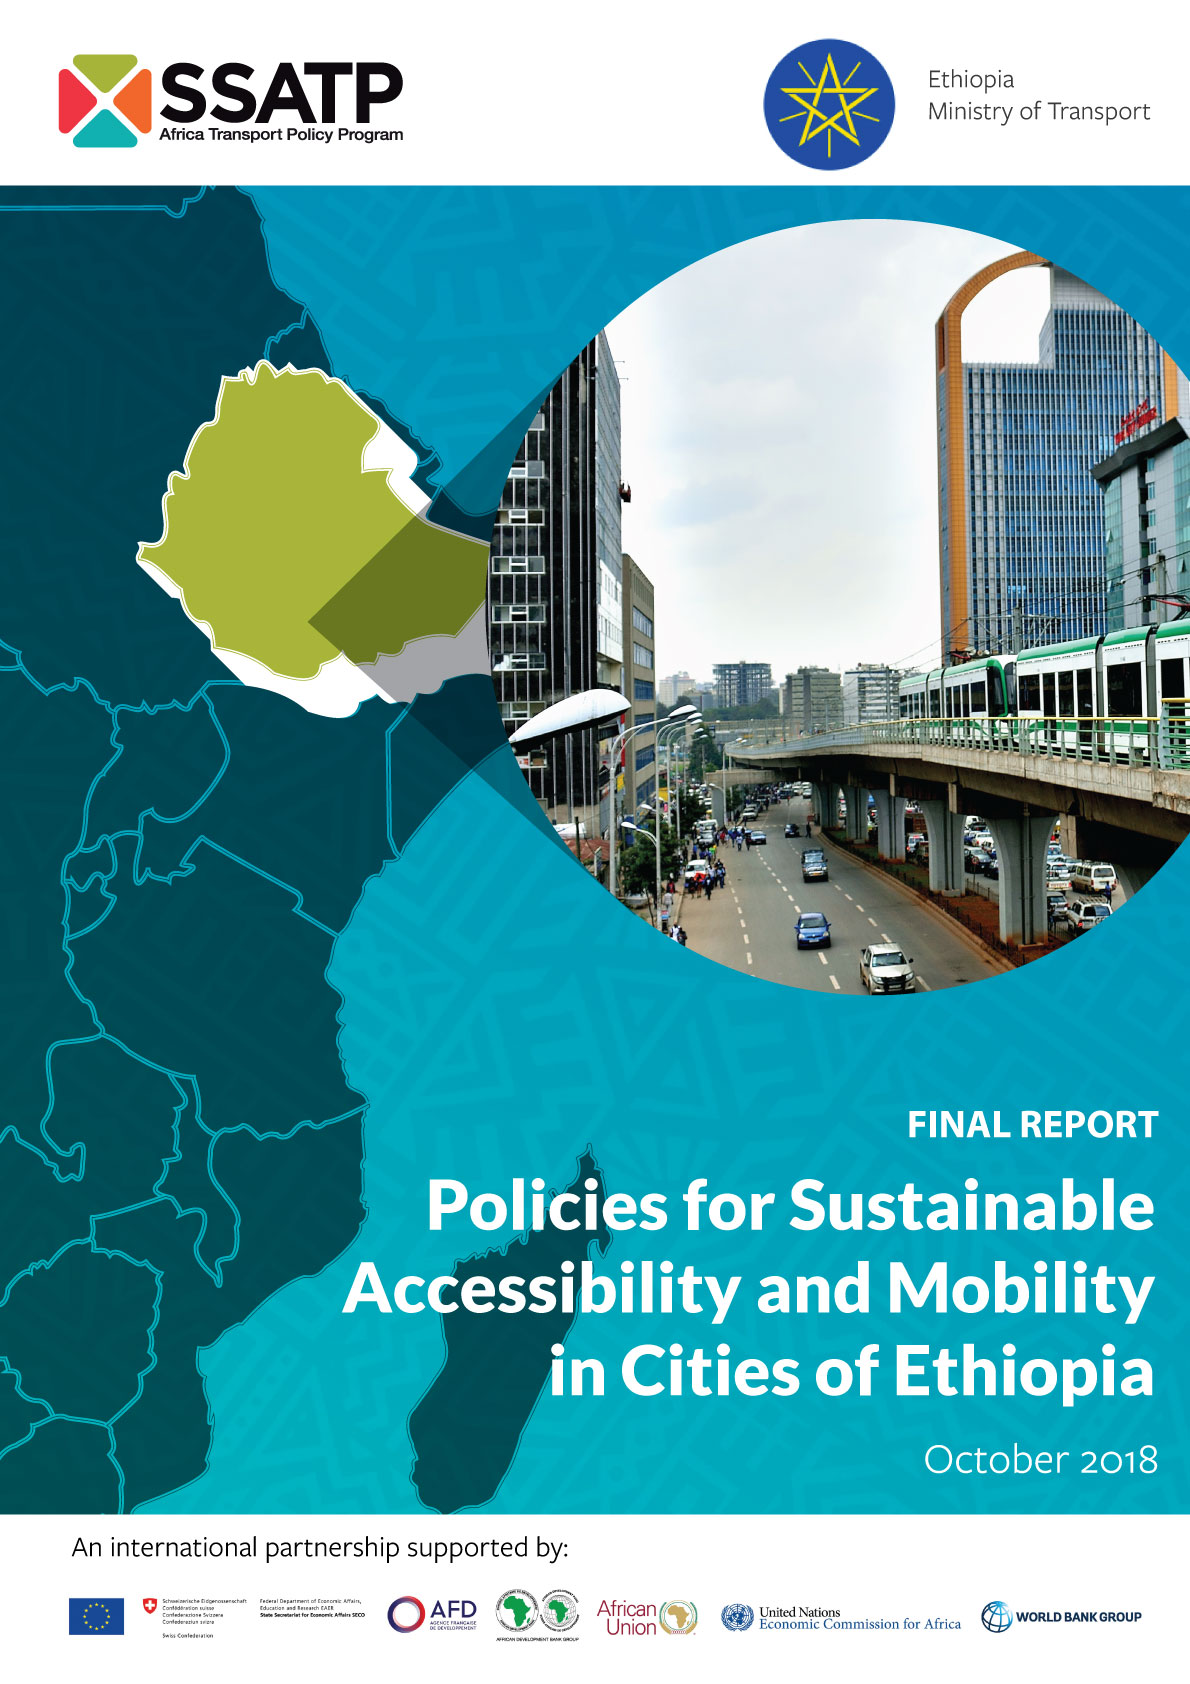 Policies for Sustainable Accessibility and Mobility in Cities of Ethiopia - Policy & Strategy Paper